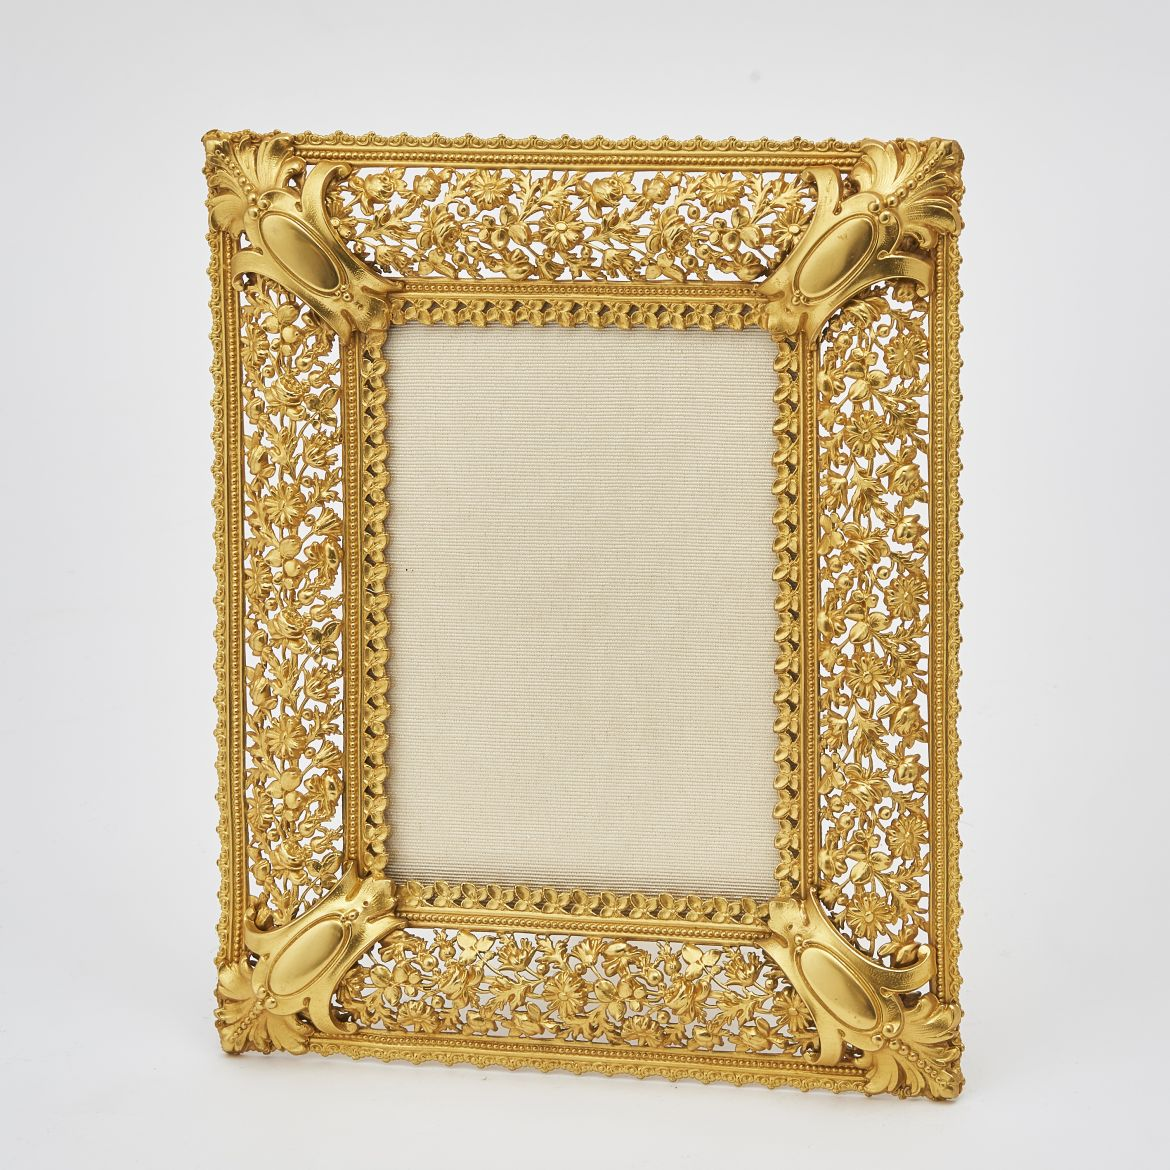 Pressed Gilt Bronze Frame With Corner Motifs